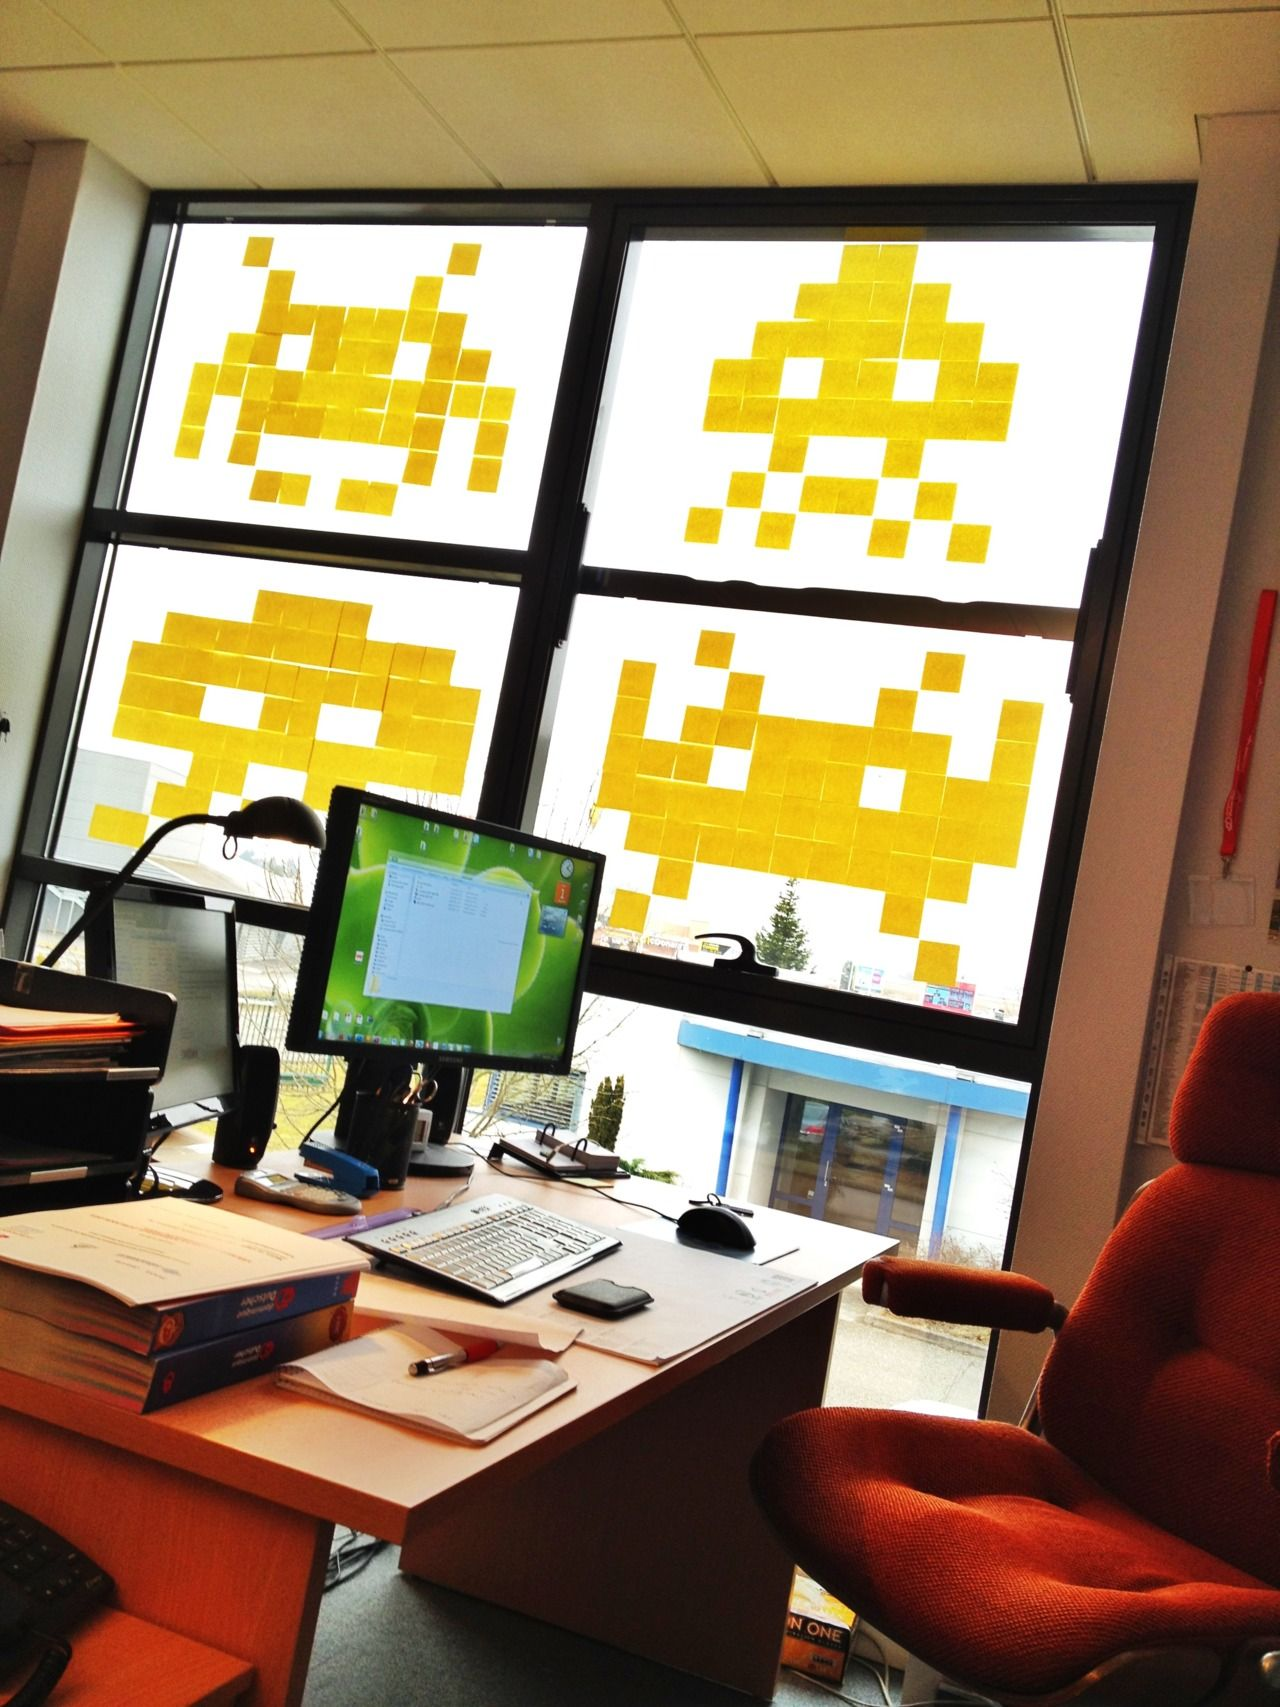 Space invaders | Post it War | Pinterest | Space invaders